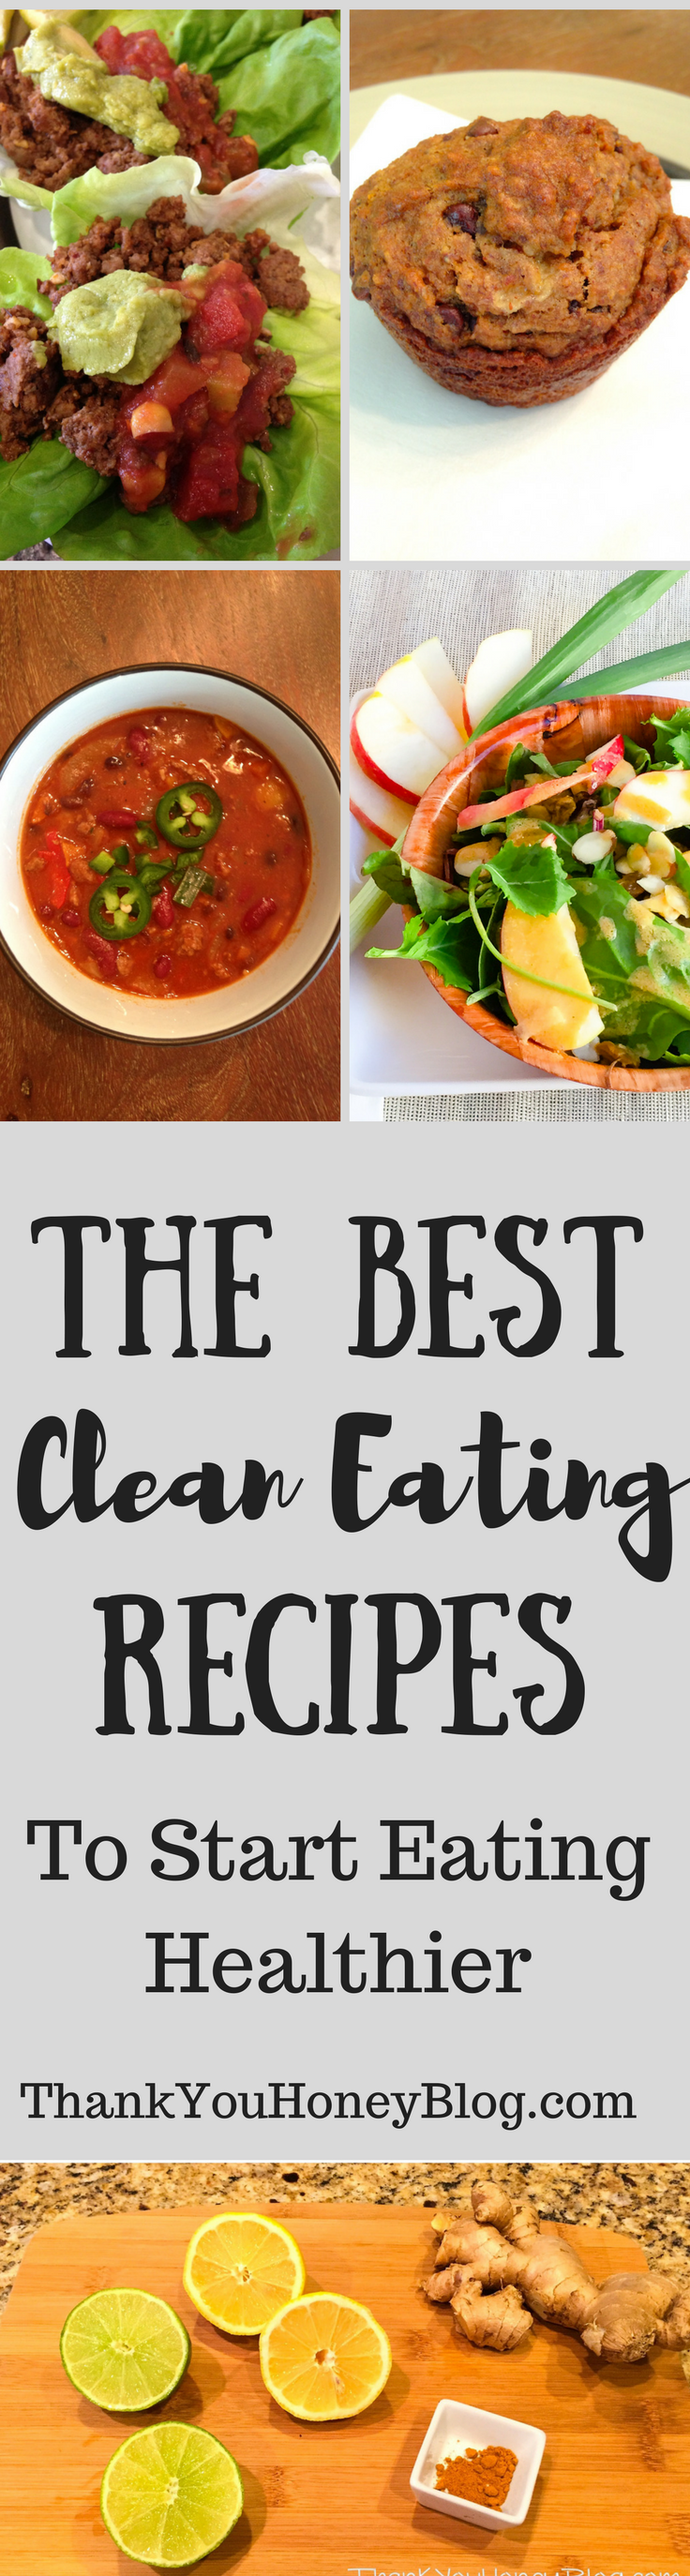 The Best Clean Eating Recipes to Start Eating Healthier